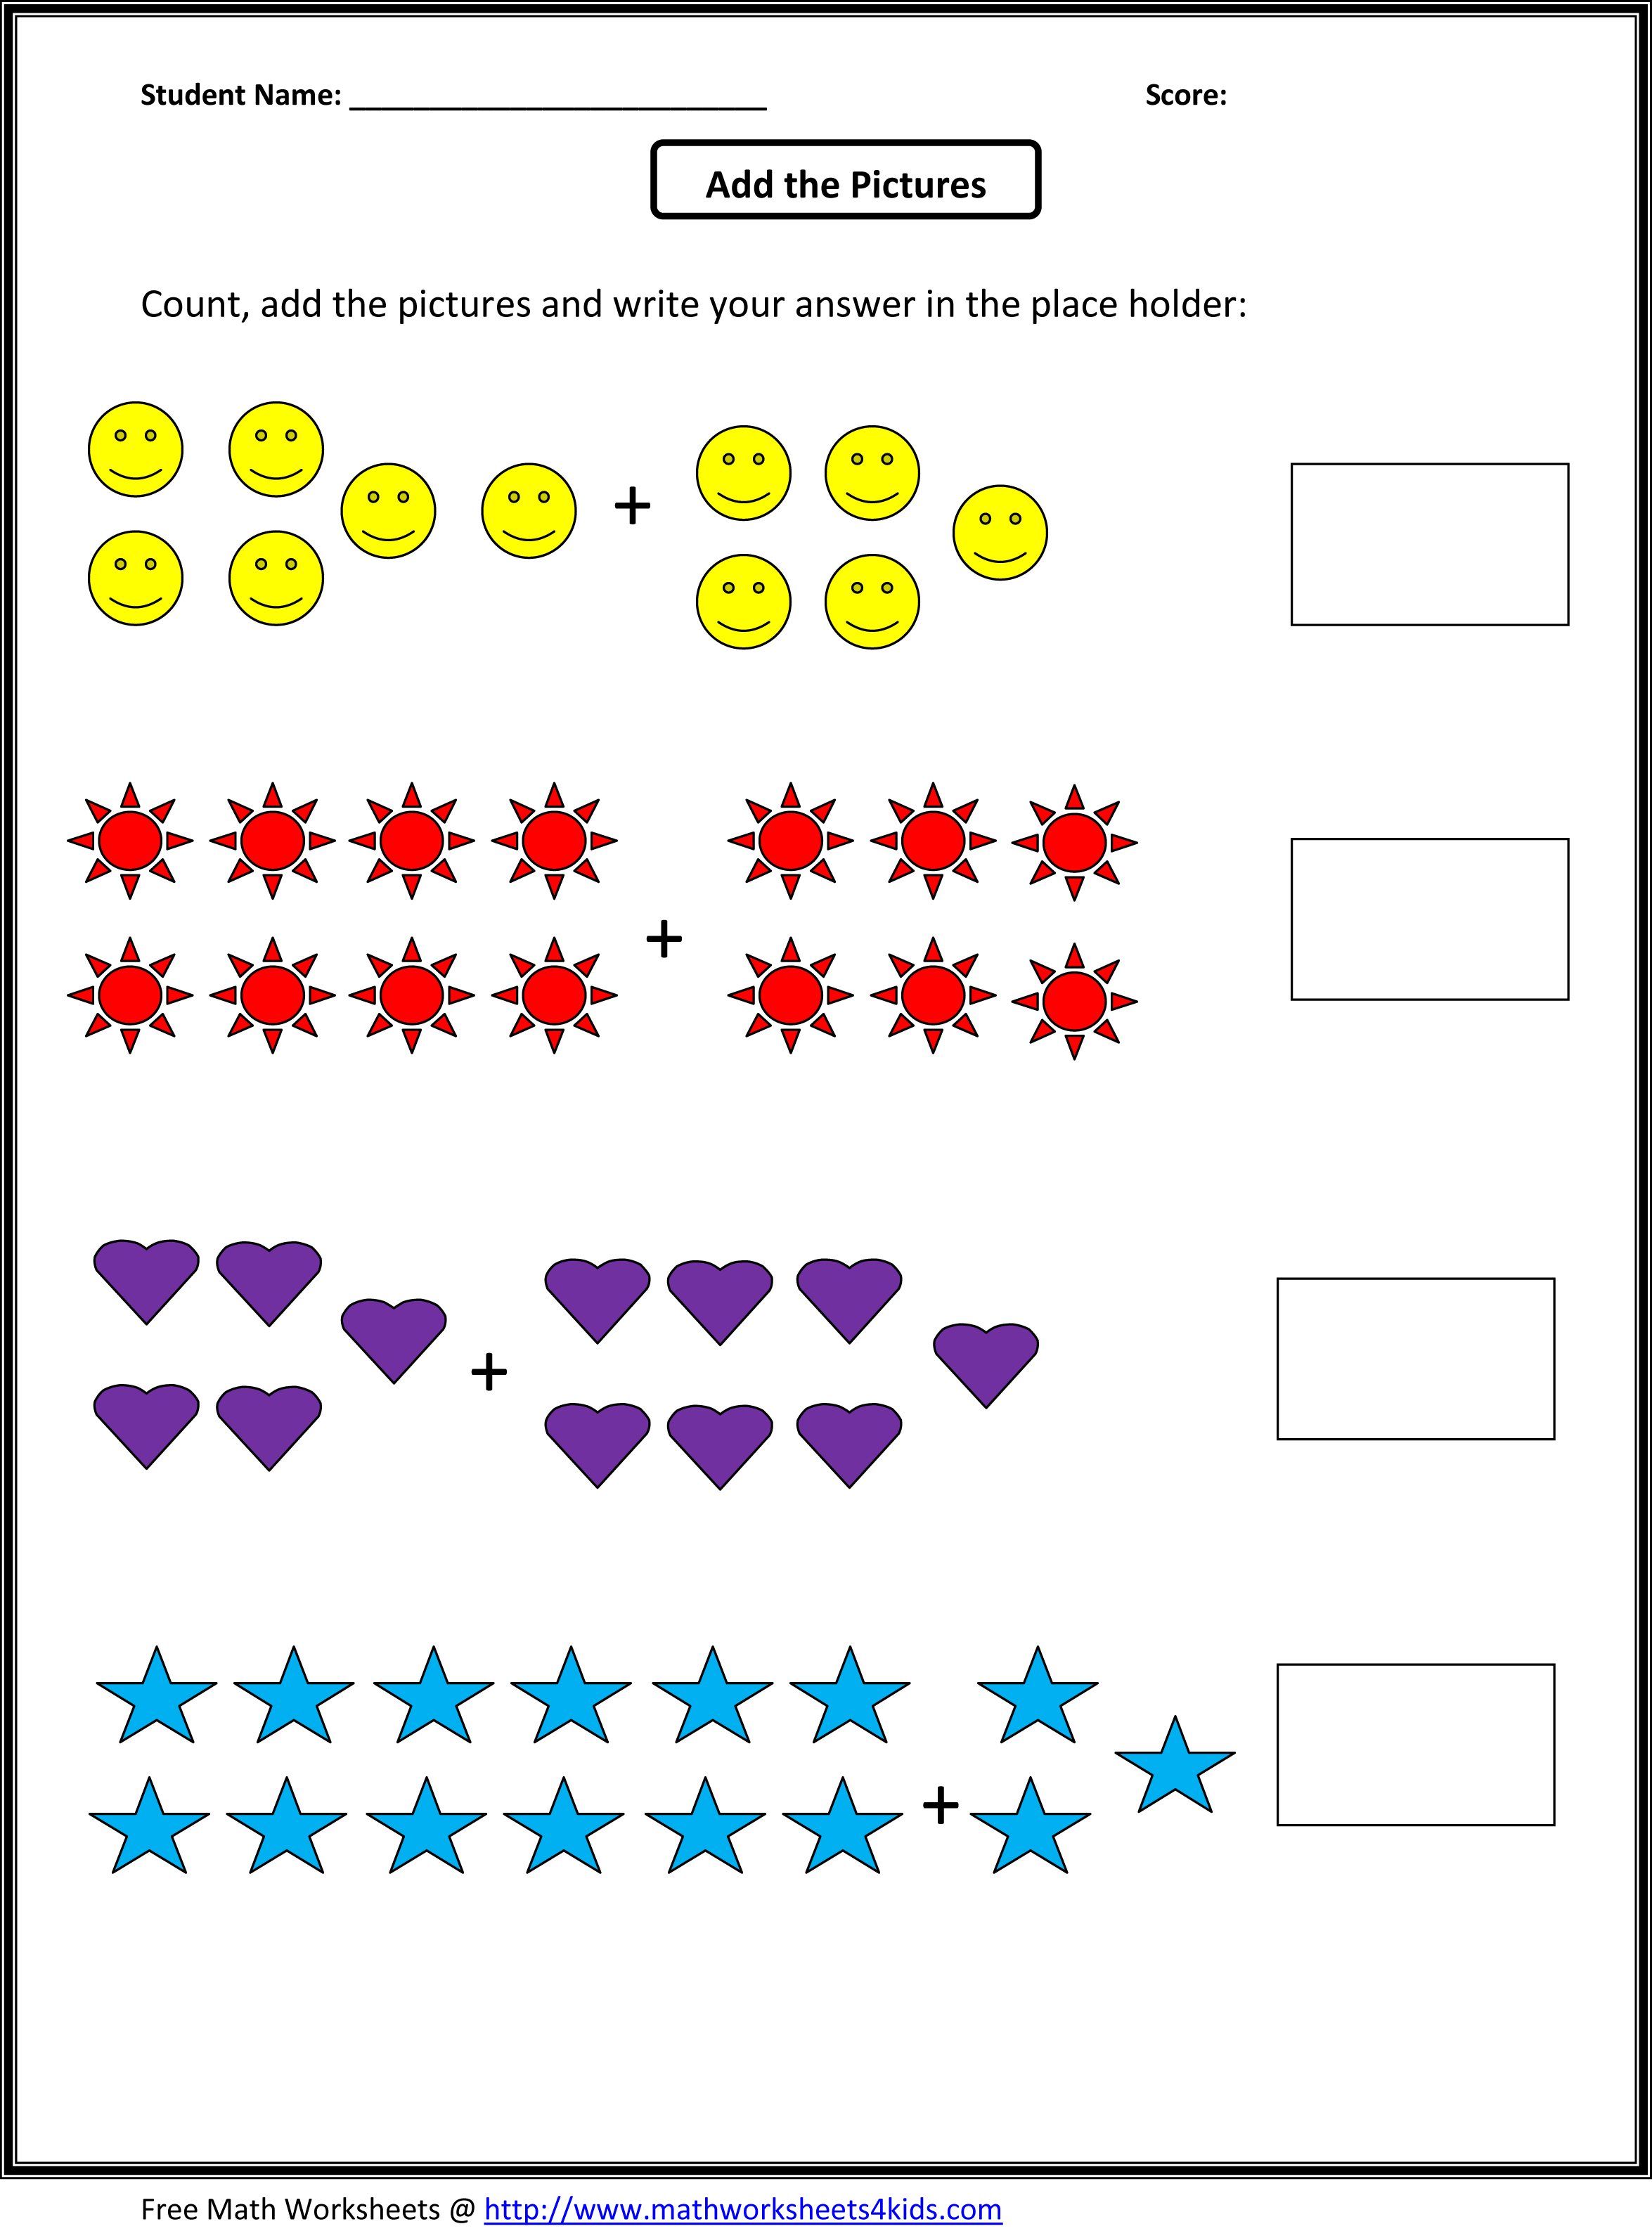 Proatmealus  Inspiring Grade  Maths Worksheet  Reocurent With Fetching Math Worksheets For St Grade Free  Reocurent With Astounding Butterfly Math Worksheets Also Finding The Circumference Of A Circle Worksheets In Addition Common Core Mathematics Curriculum Worksheets And Expanded Form Worksheets Th Grade As Well As Investment Worksheet Additionally Net Worksheets From Reocurentcom With Proatmealus  Fetching Grade  Maths Worksheet  Reocurent With Astounding Math Worksheets For St Grade Free  Reocurent And Inspiring Butterfly Math Worksheets Also Finding The Circumference Of A Circle Worksheets In Addition Common Core Mathematics Curriculum Worksheets From Reocurentcom